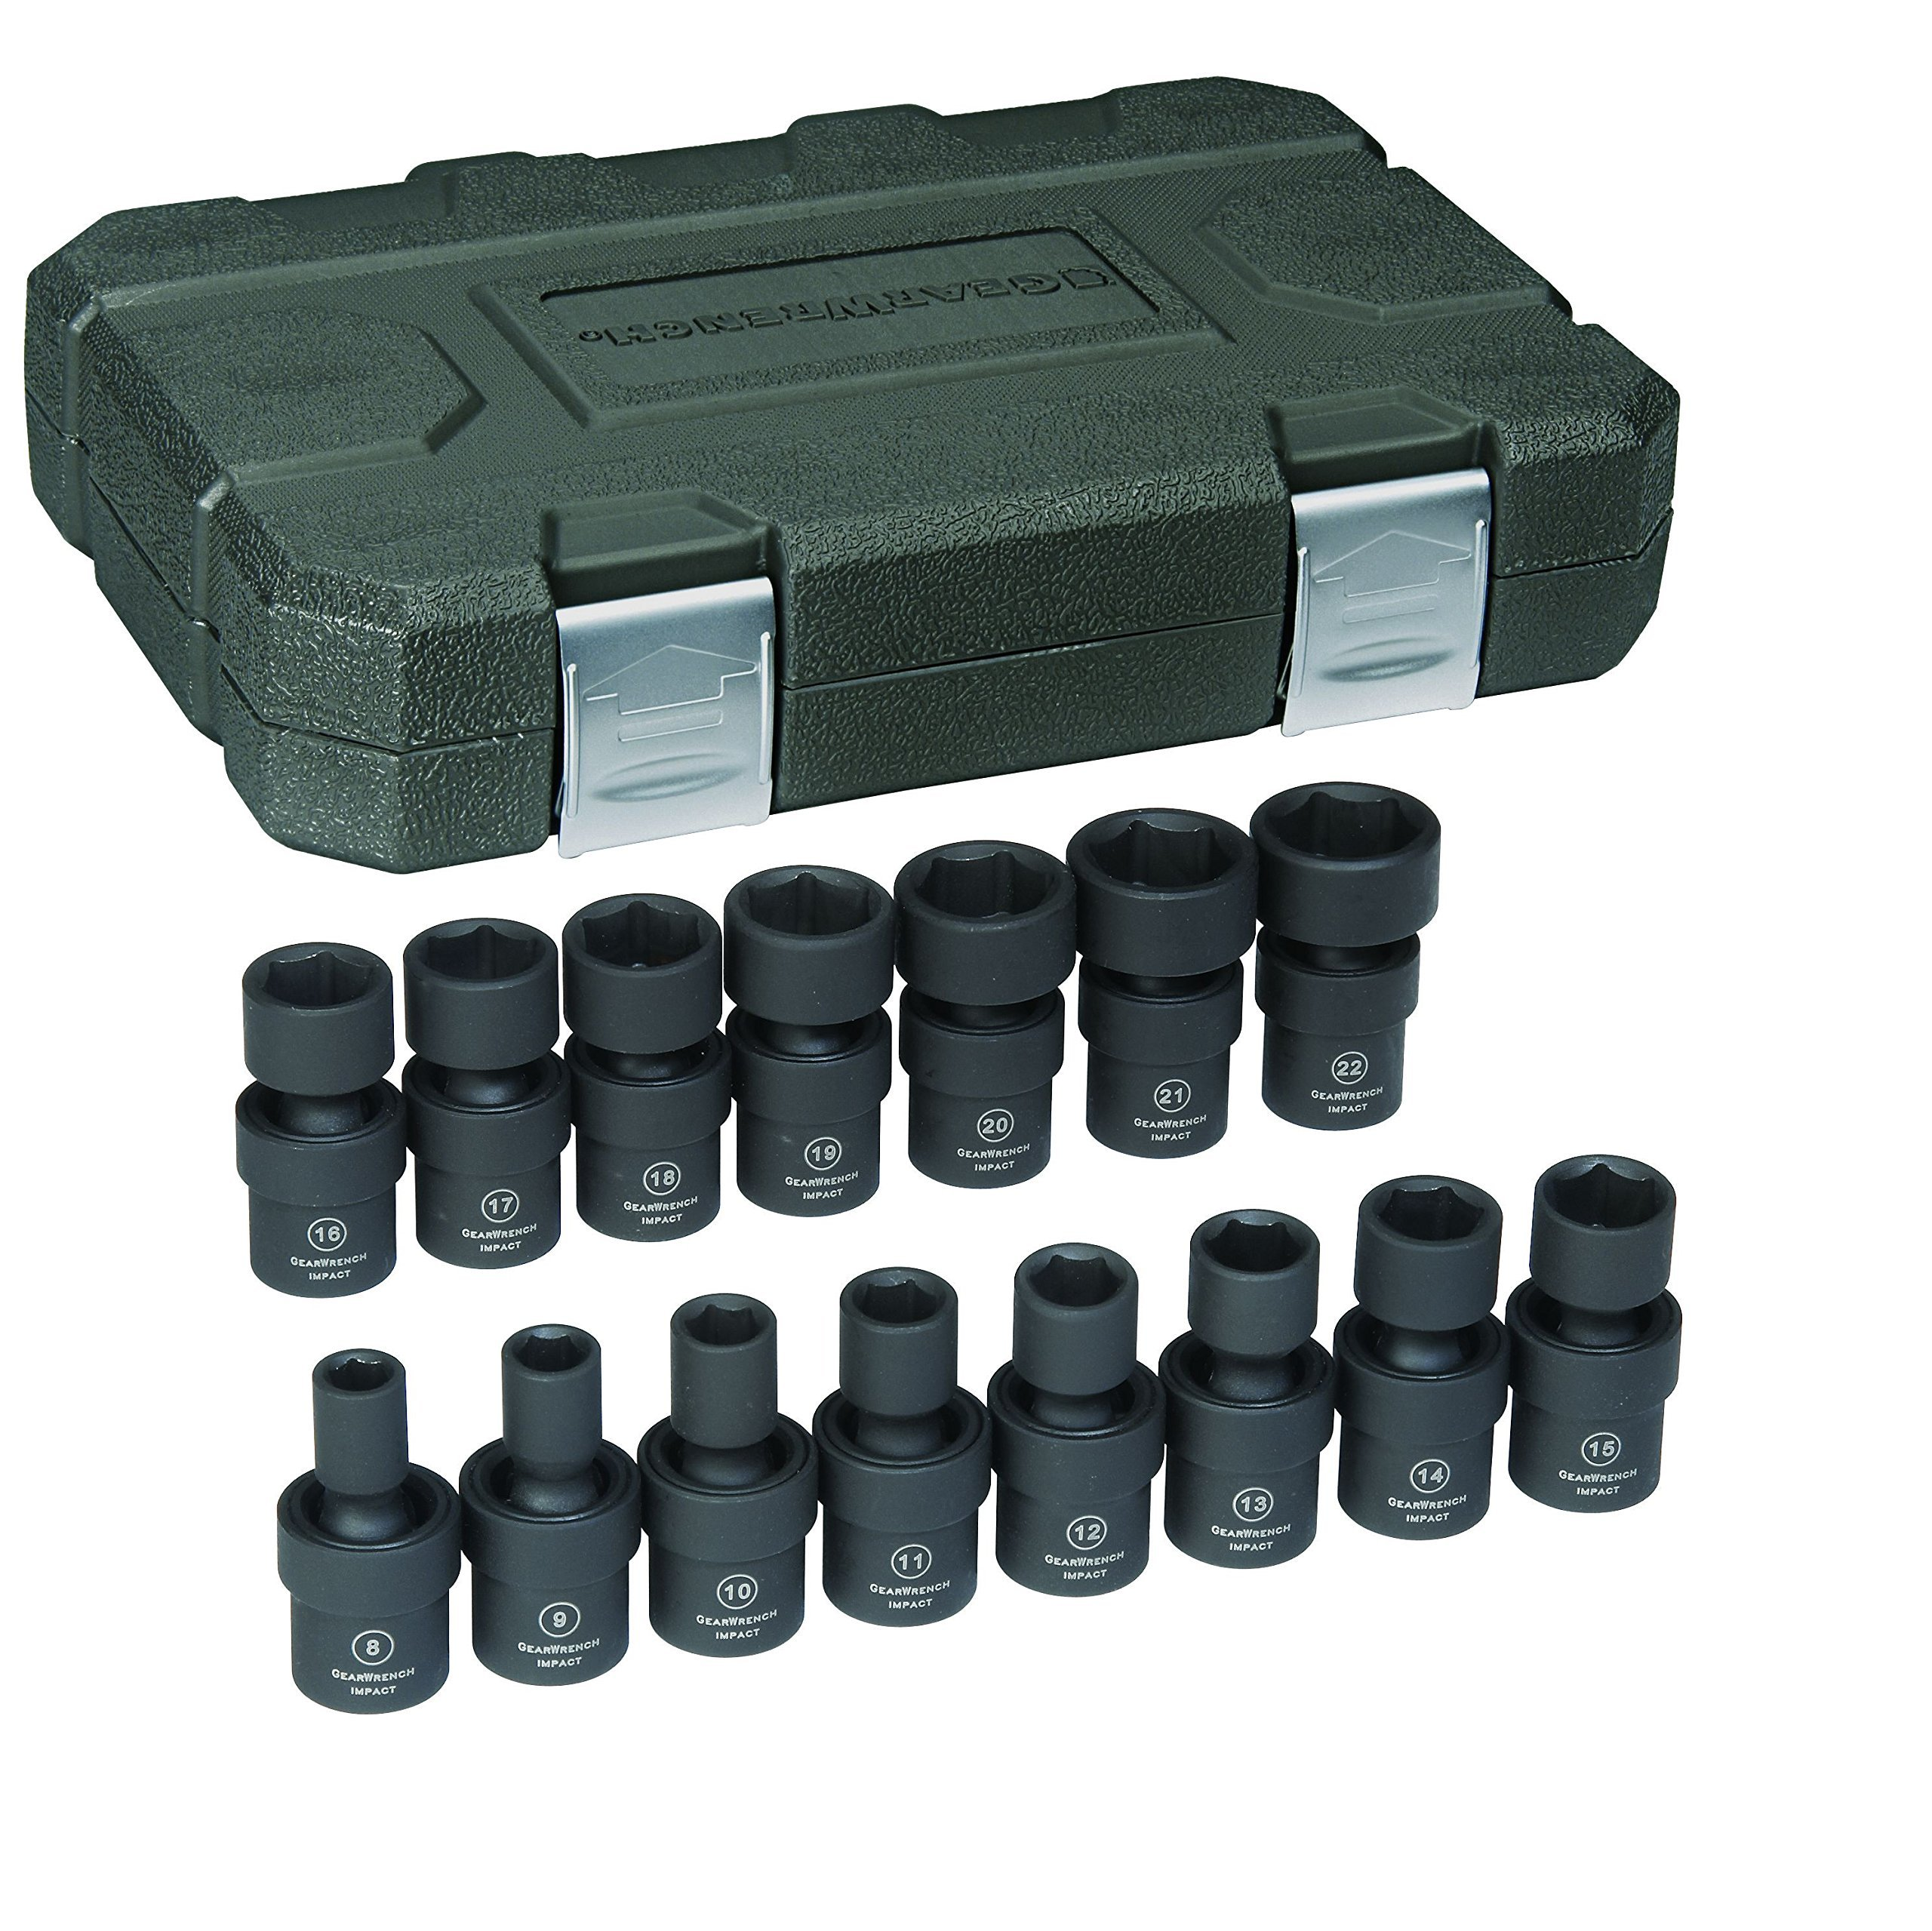 GEARWRENCH 15 Pc. 3/8'' Drive 6 Point Standard Universal Impact Metric Socket Set - 84918N by GearWrench